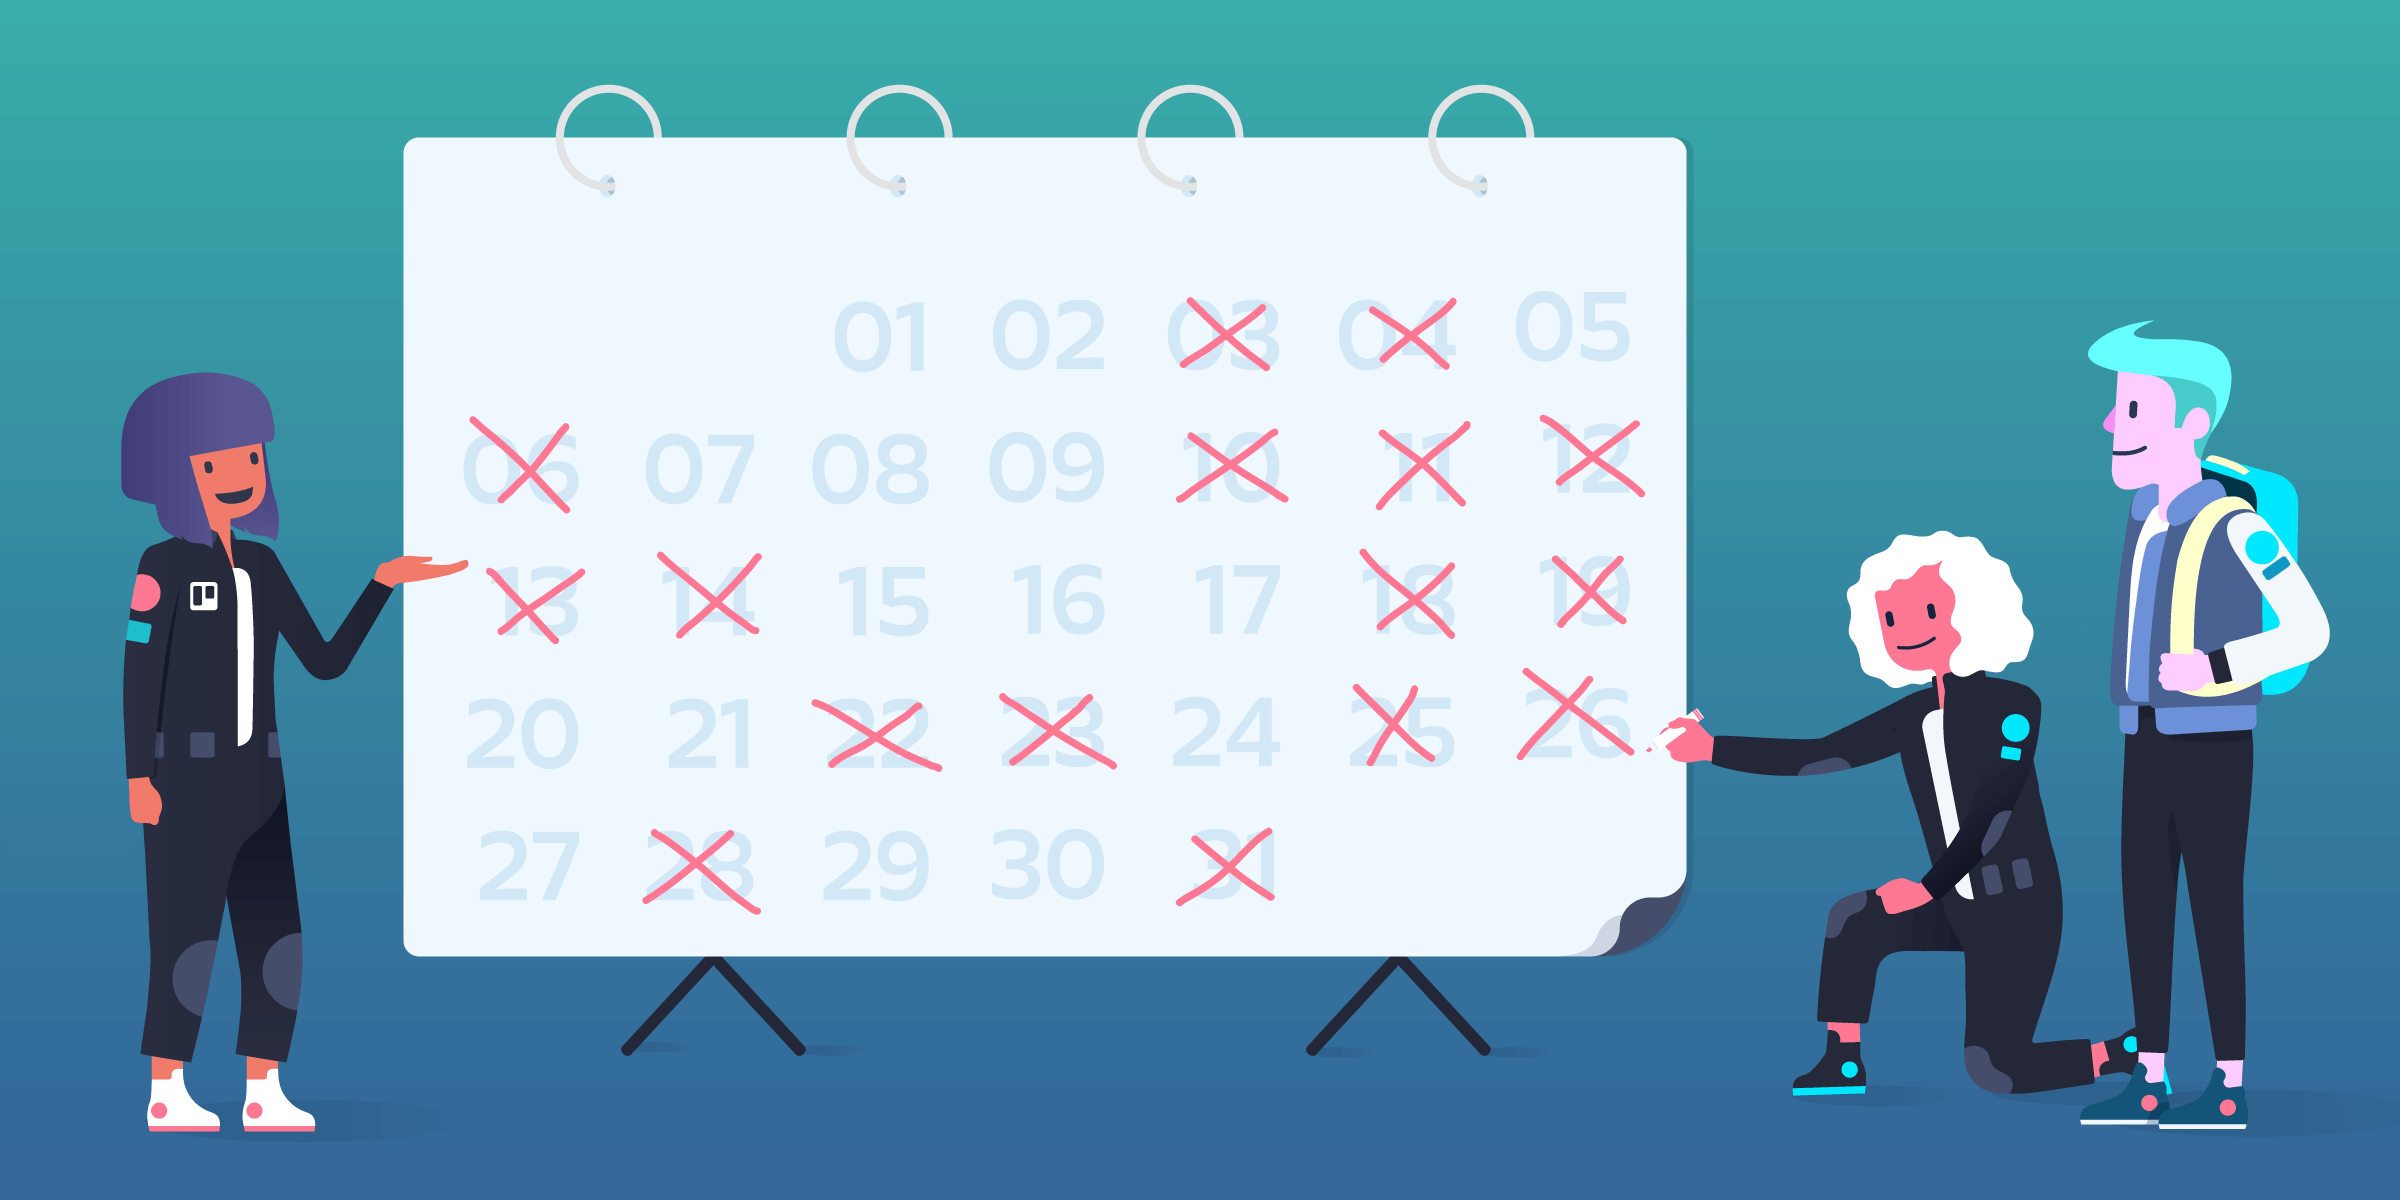 Secrets of the 3 day work week